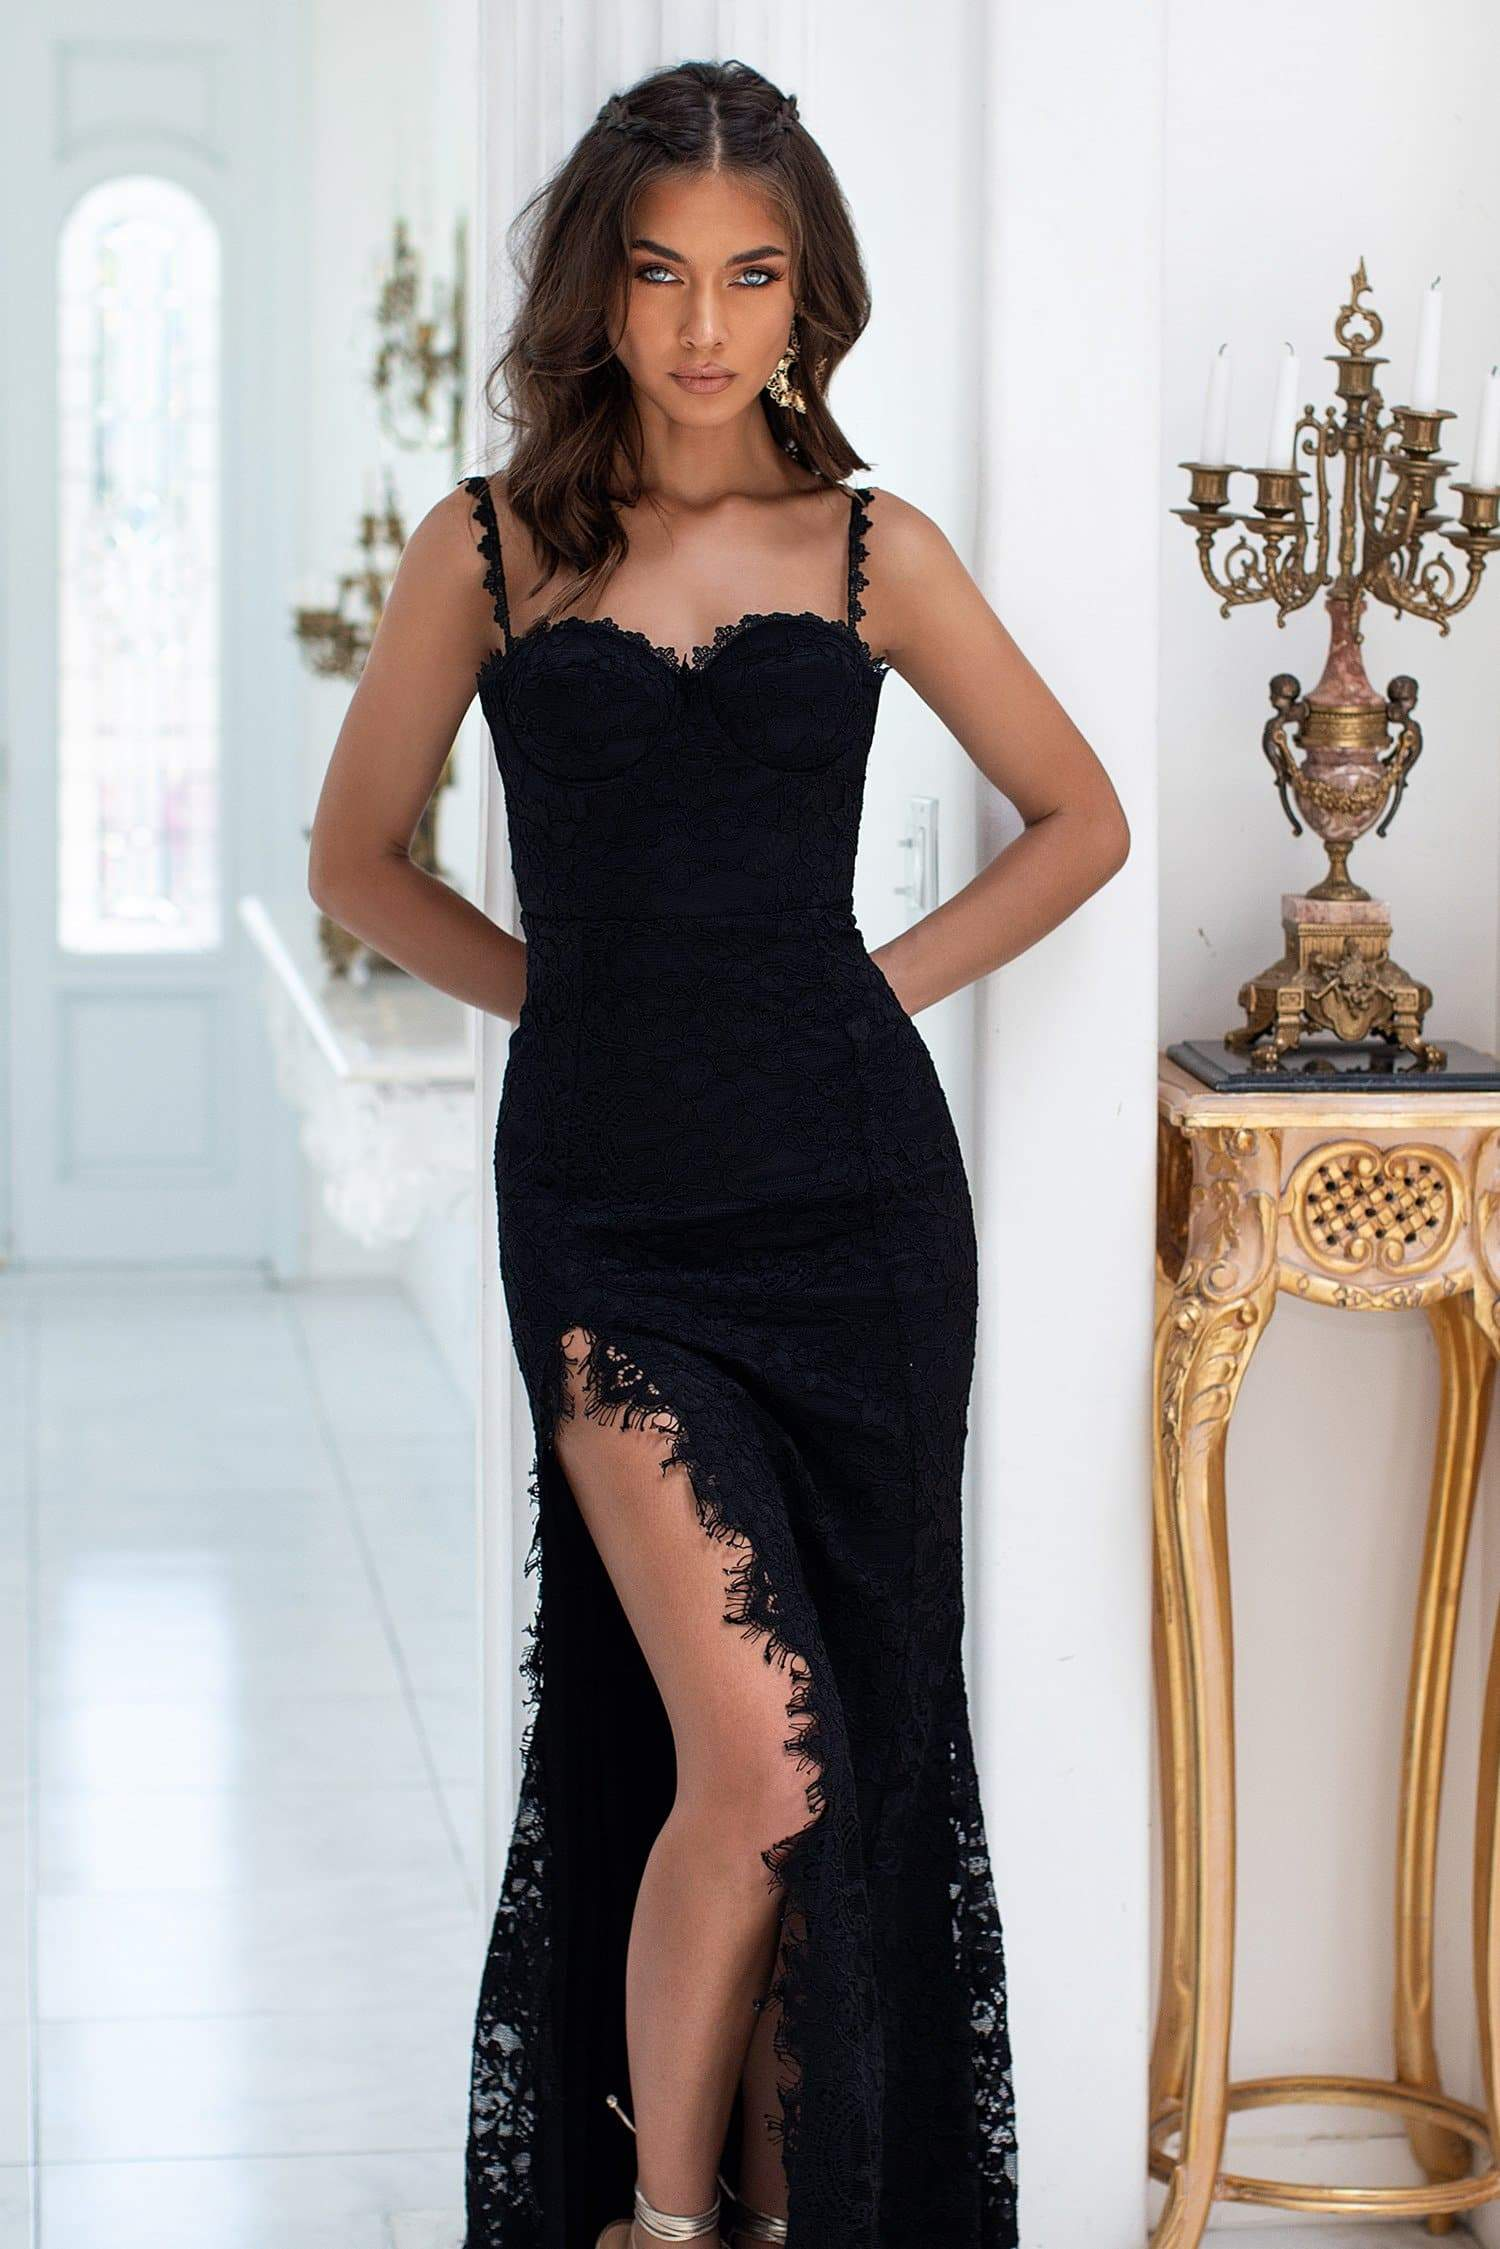 Caliana - Black Lace Gown with Classic Bustier, Low Back & Side Slit